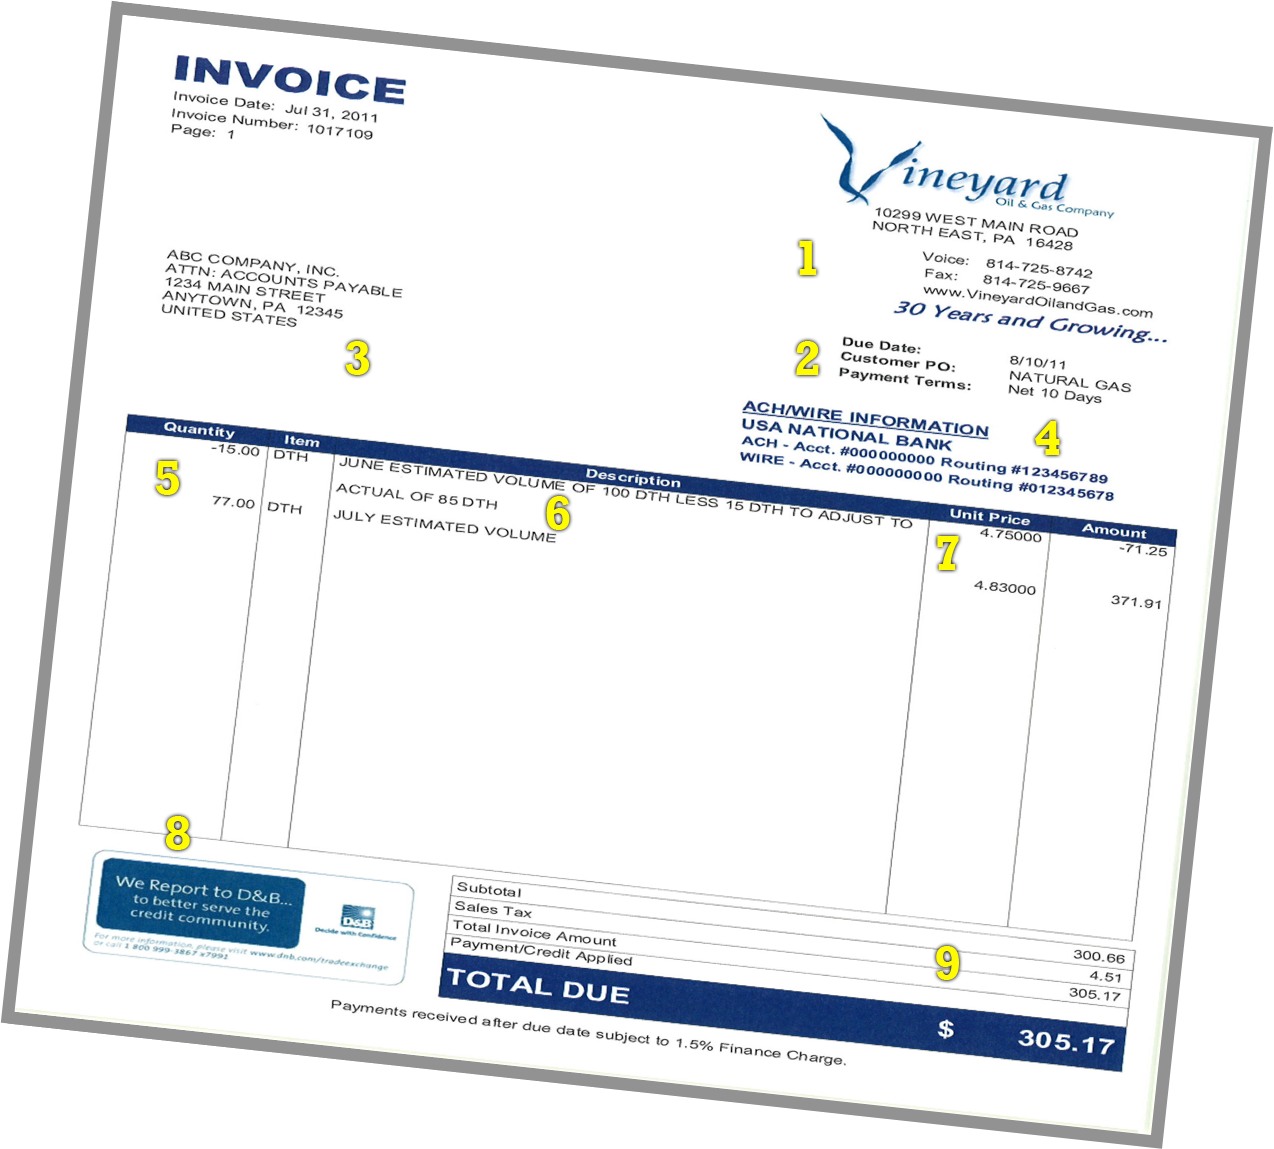 Vineyard Oil Gas Company How To Read My Invoice - Invoice routing software